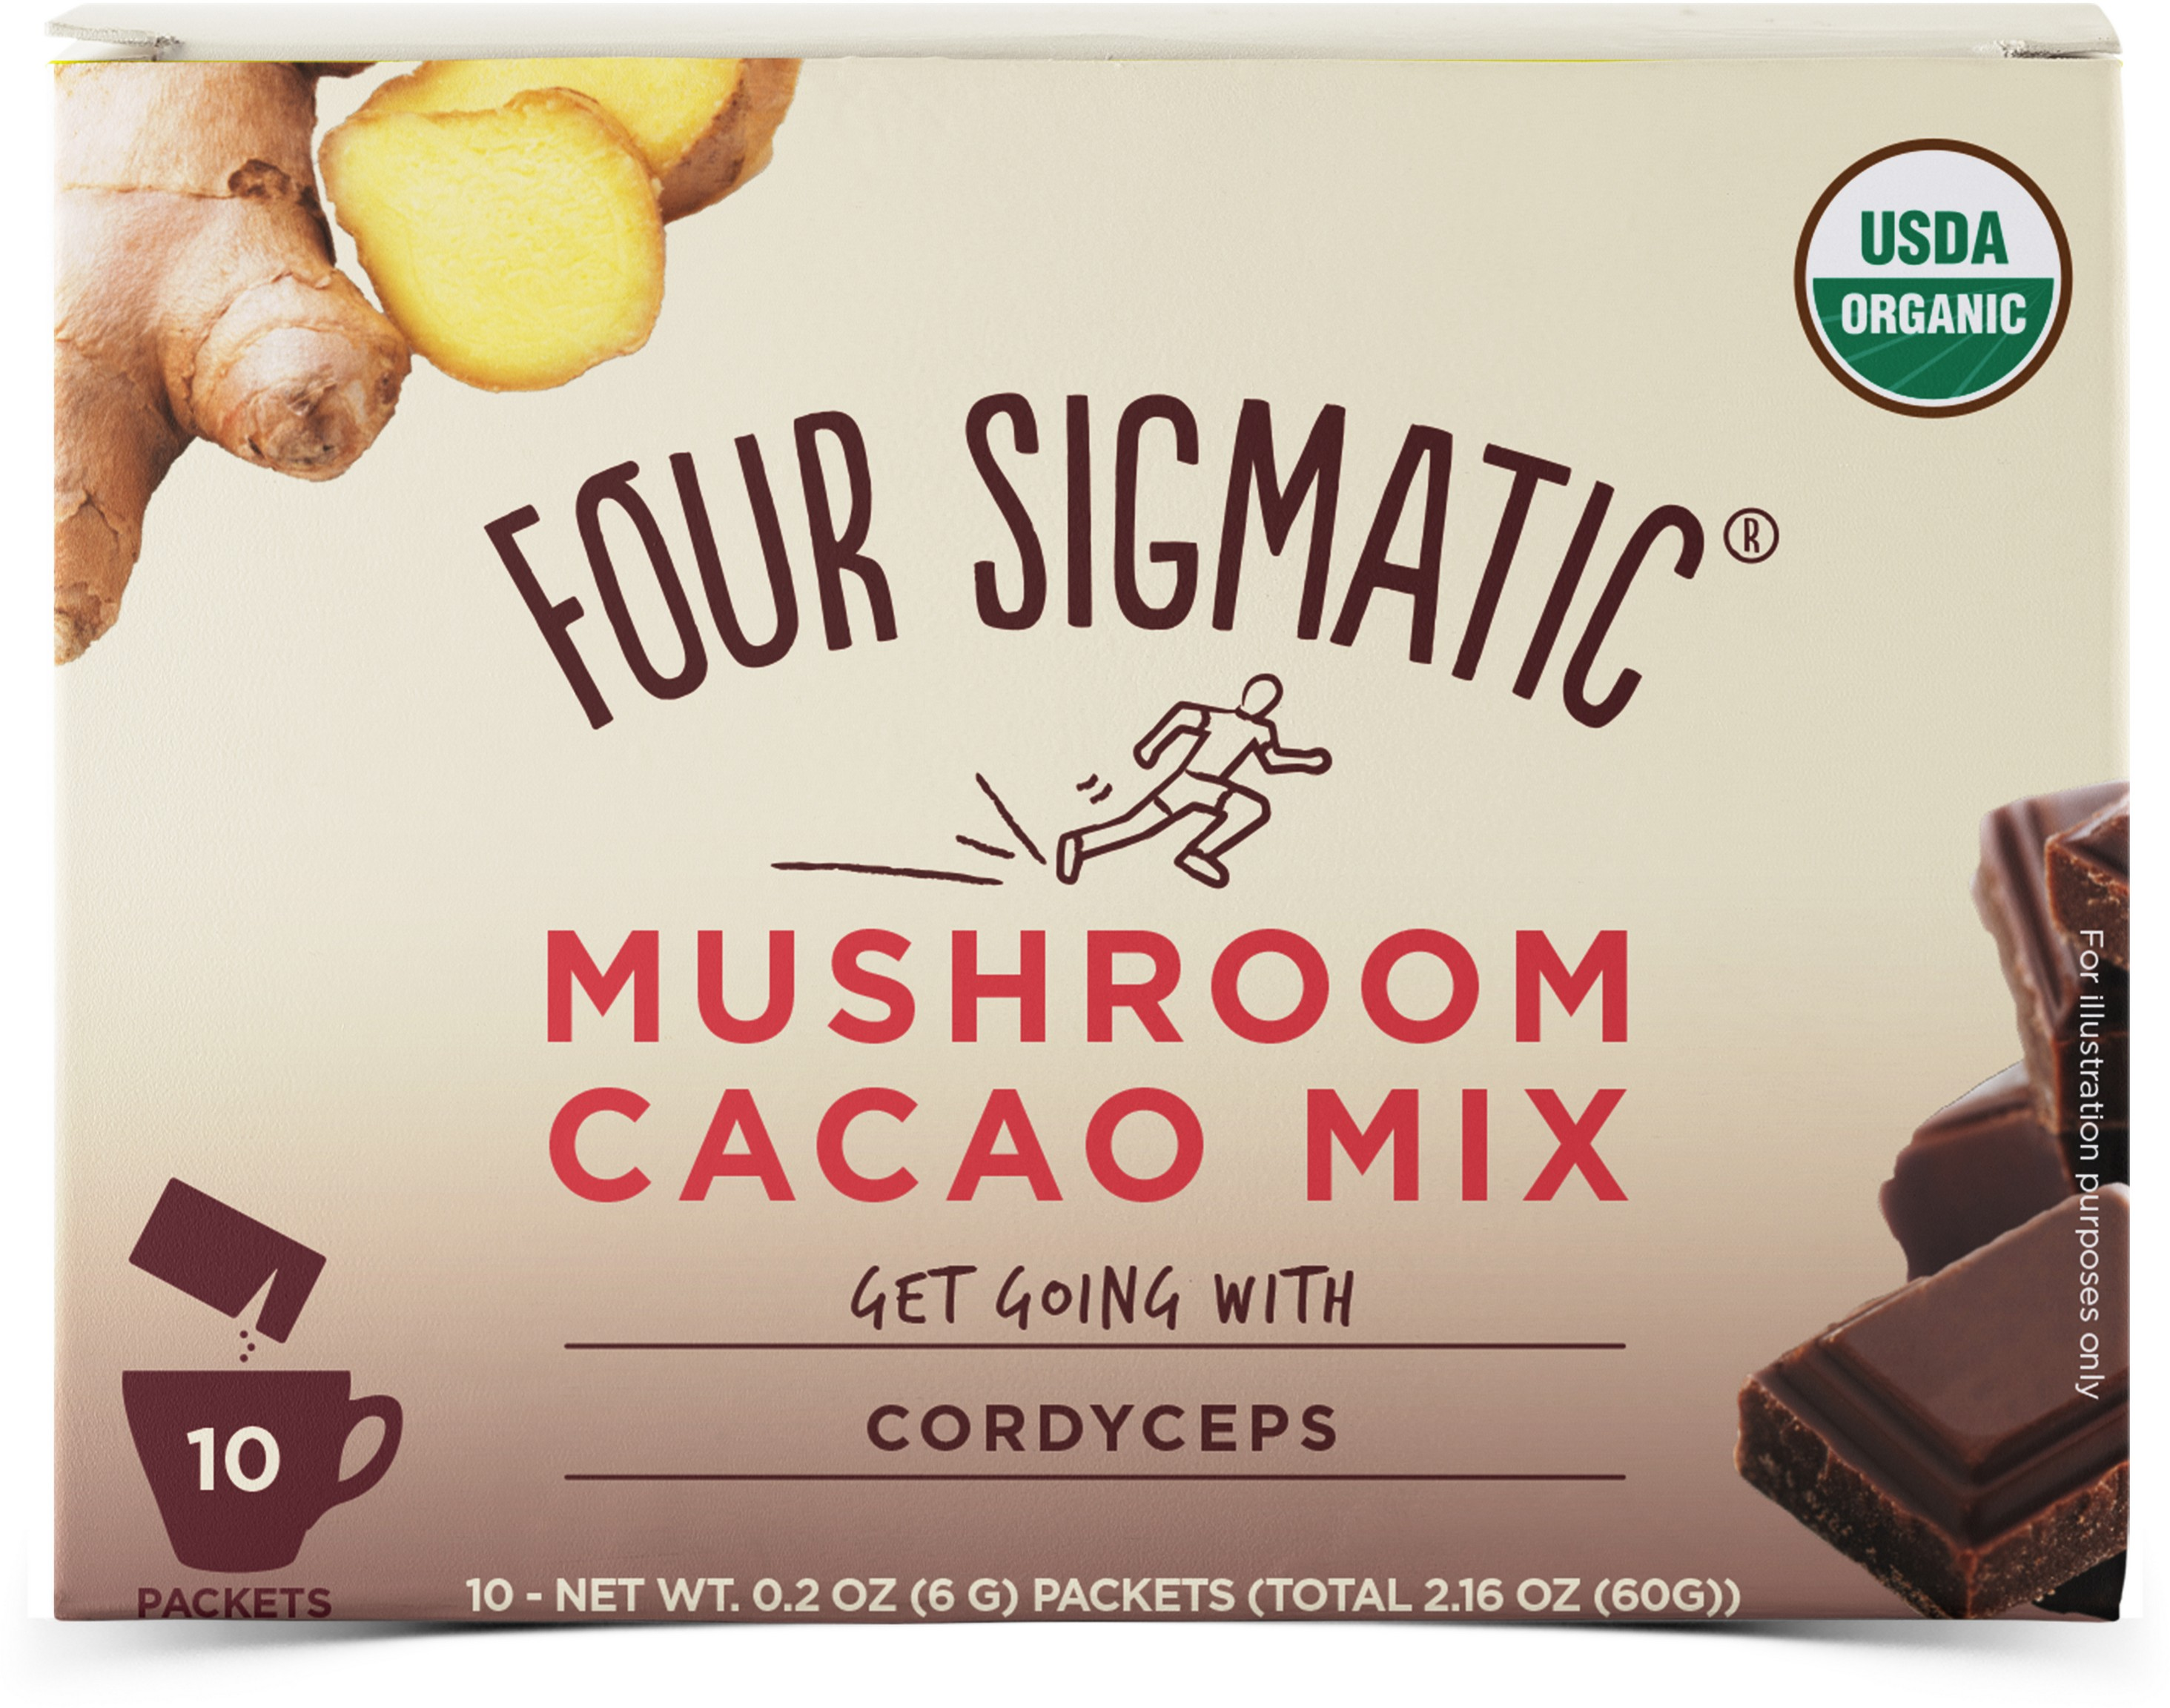 Mushroom Cacao Mix Get Going with Cordyceps 10 x 6g